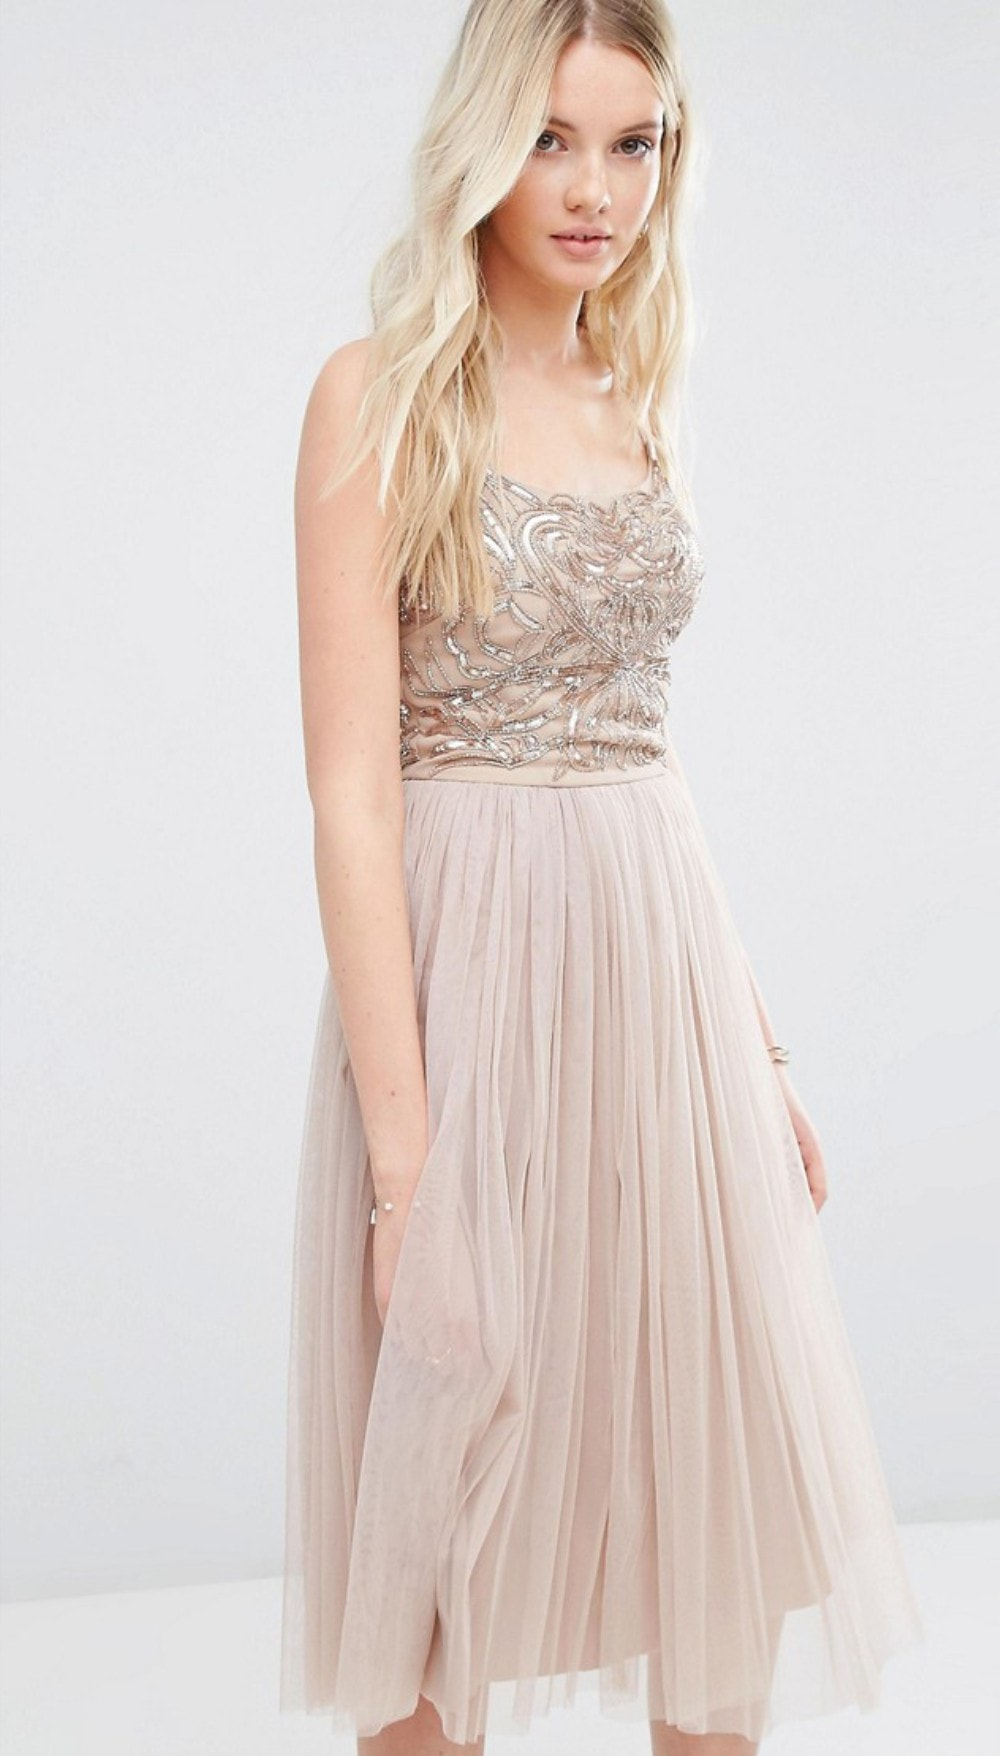 Embellished top tulle skirt bridesmaid dress